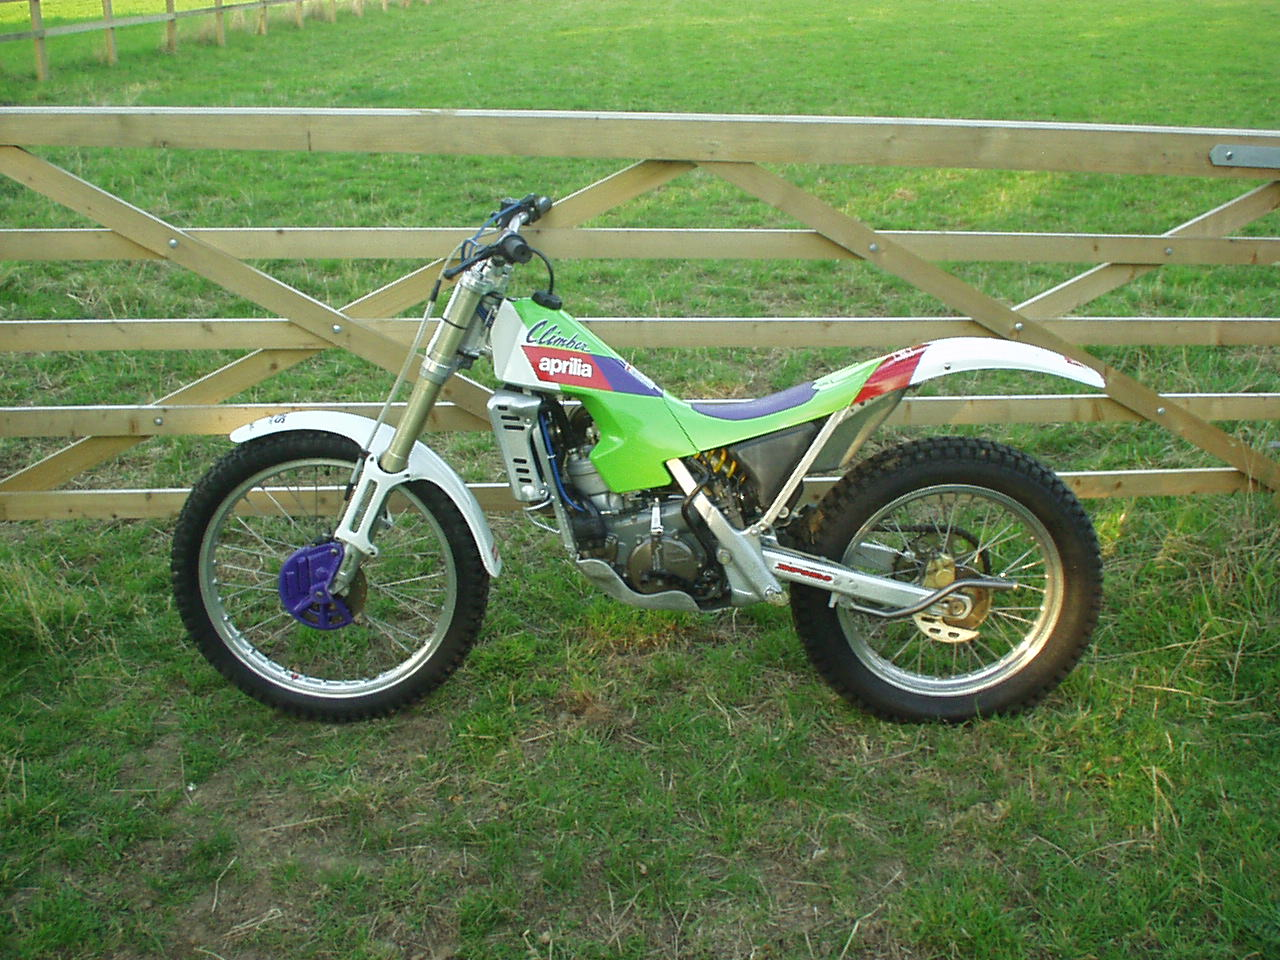 Aprilia Climber Trials Bike For Sale 600 Visordown